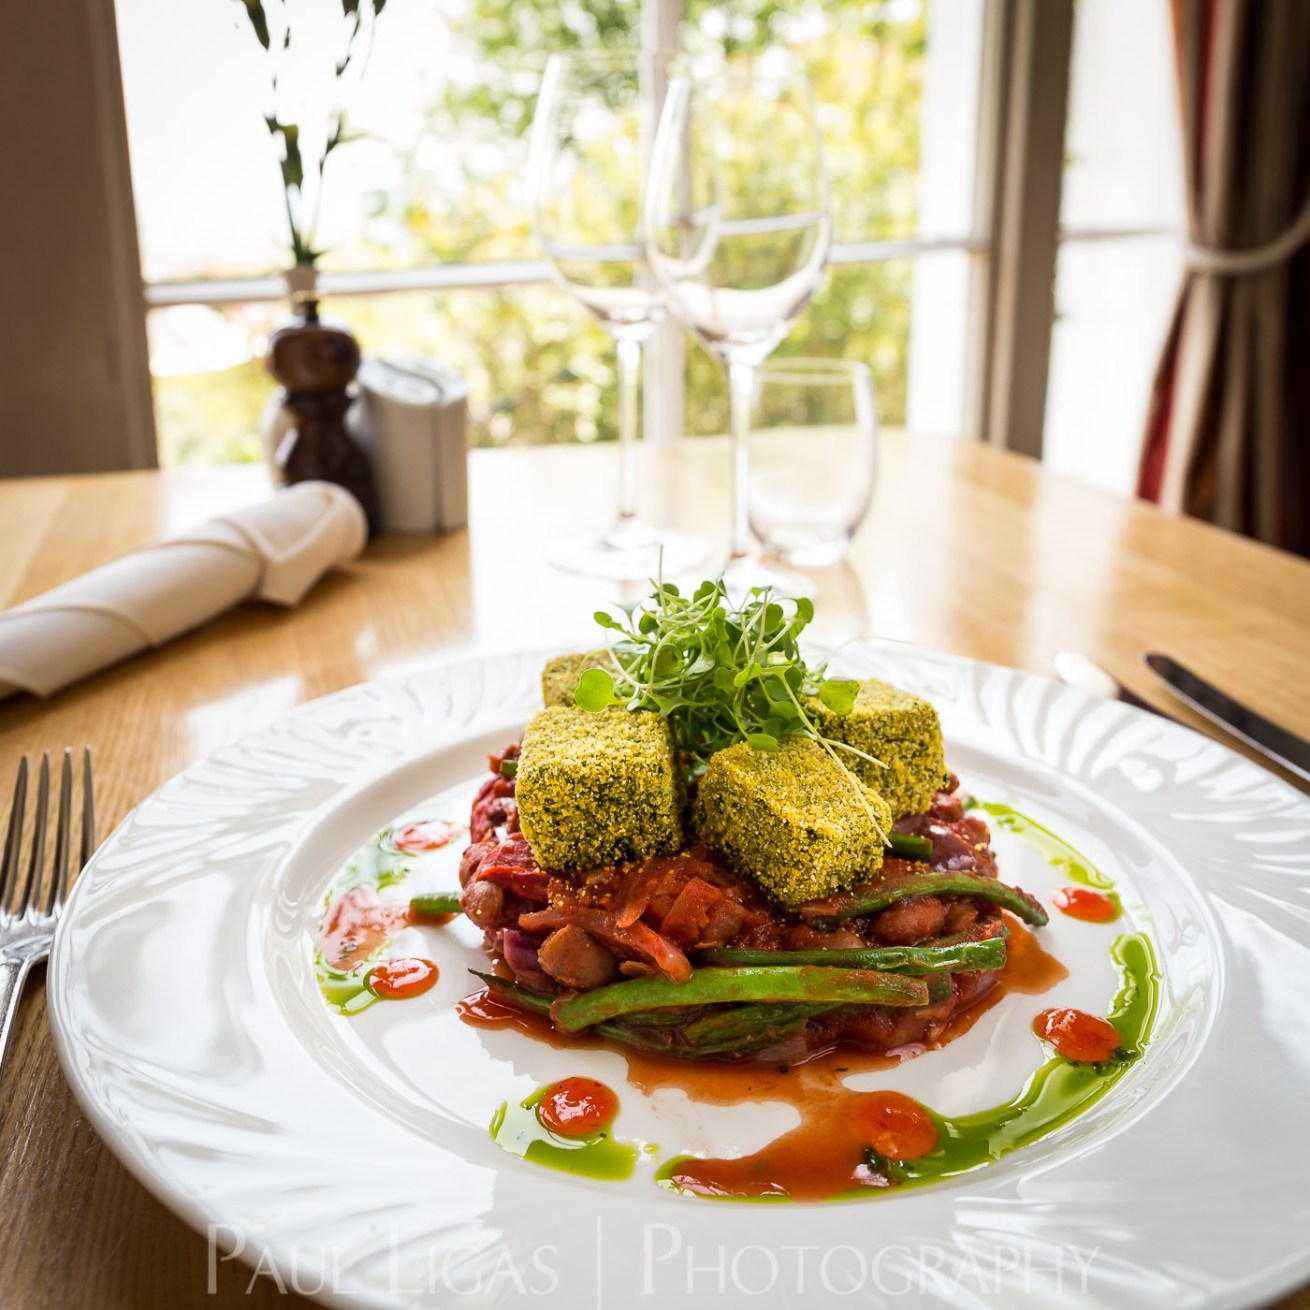 The Cottage In The Wood, Malvern, Worcestershire food photographer Herefordshire photography 7733